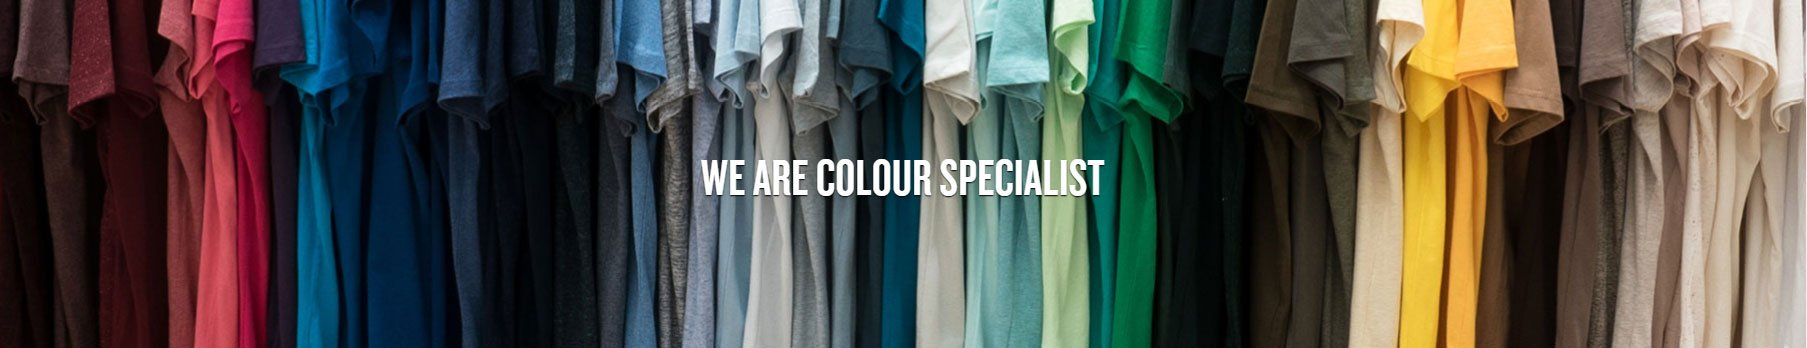 Colour Specialist